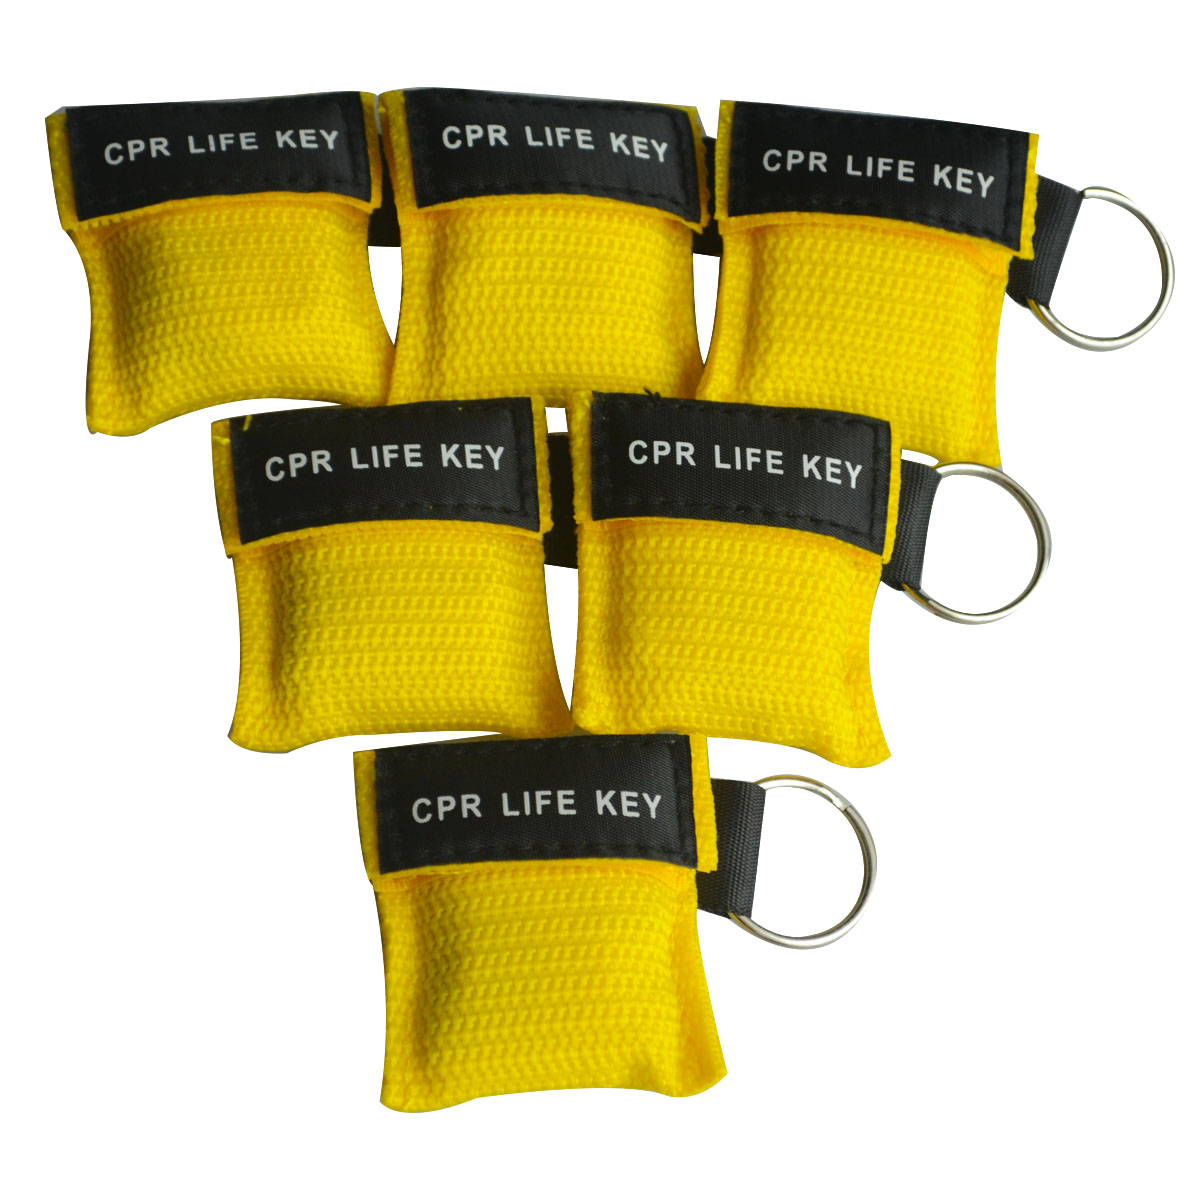 Wholesale 500Pcs/Lot CPR Resuscitator Mask CPR Life Key Emergency Face Shield Free Breathing Barrier With One-way Valve Yellow 500pcs lot optional color cpr breathing mask protect rescuers with one way valve artificial respiration reuseable mask